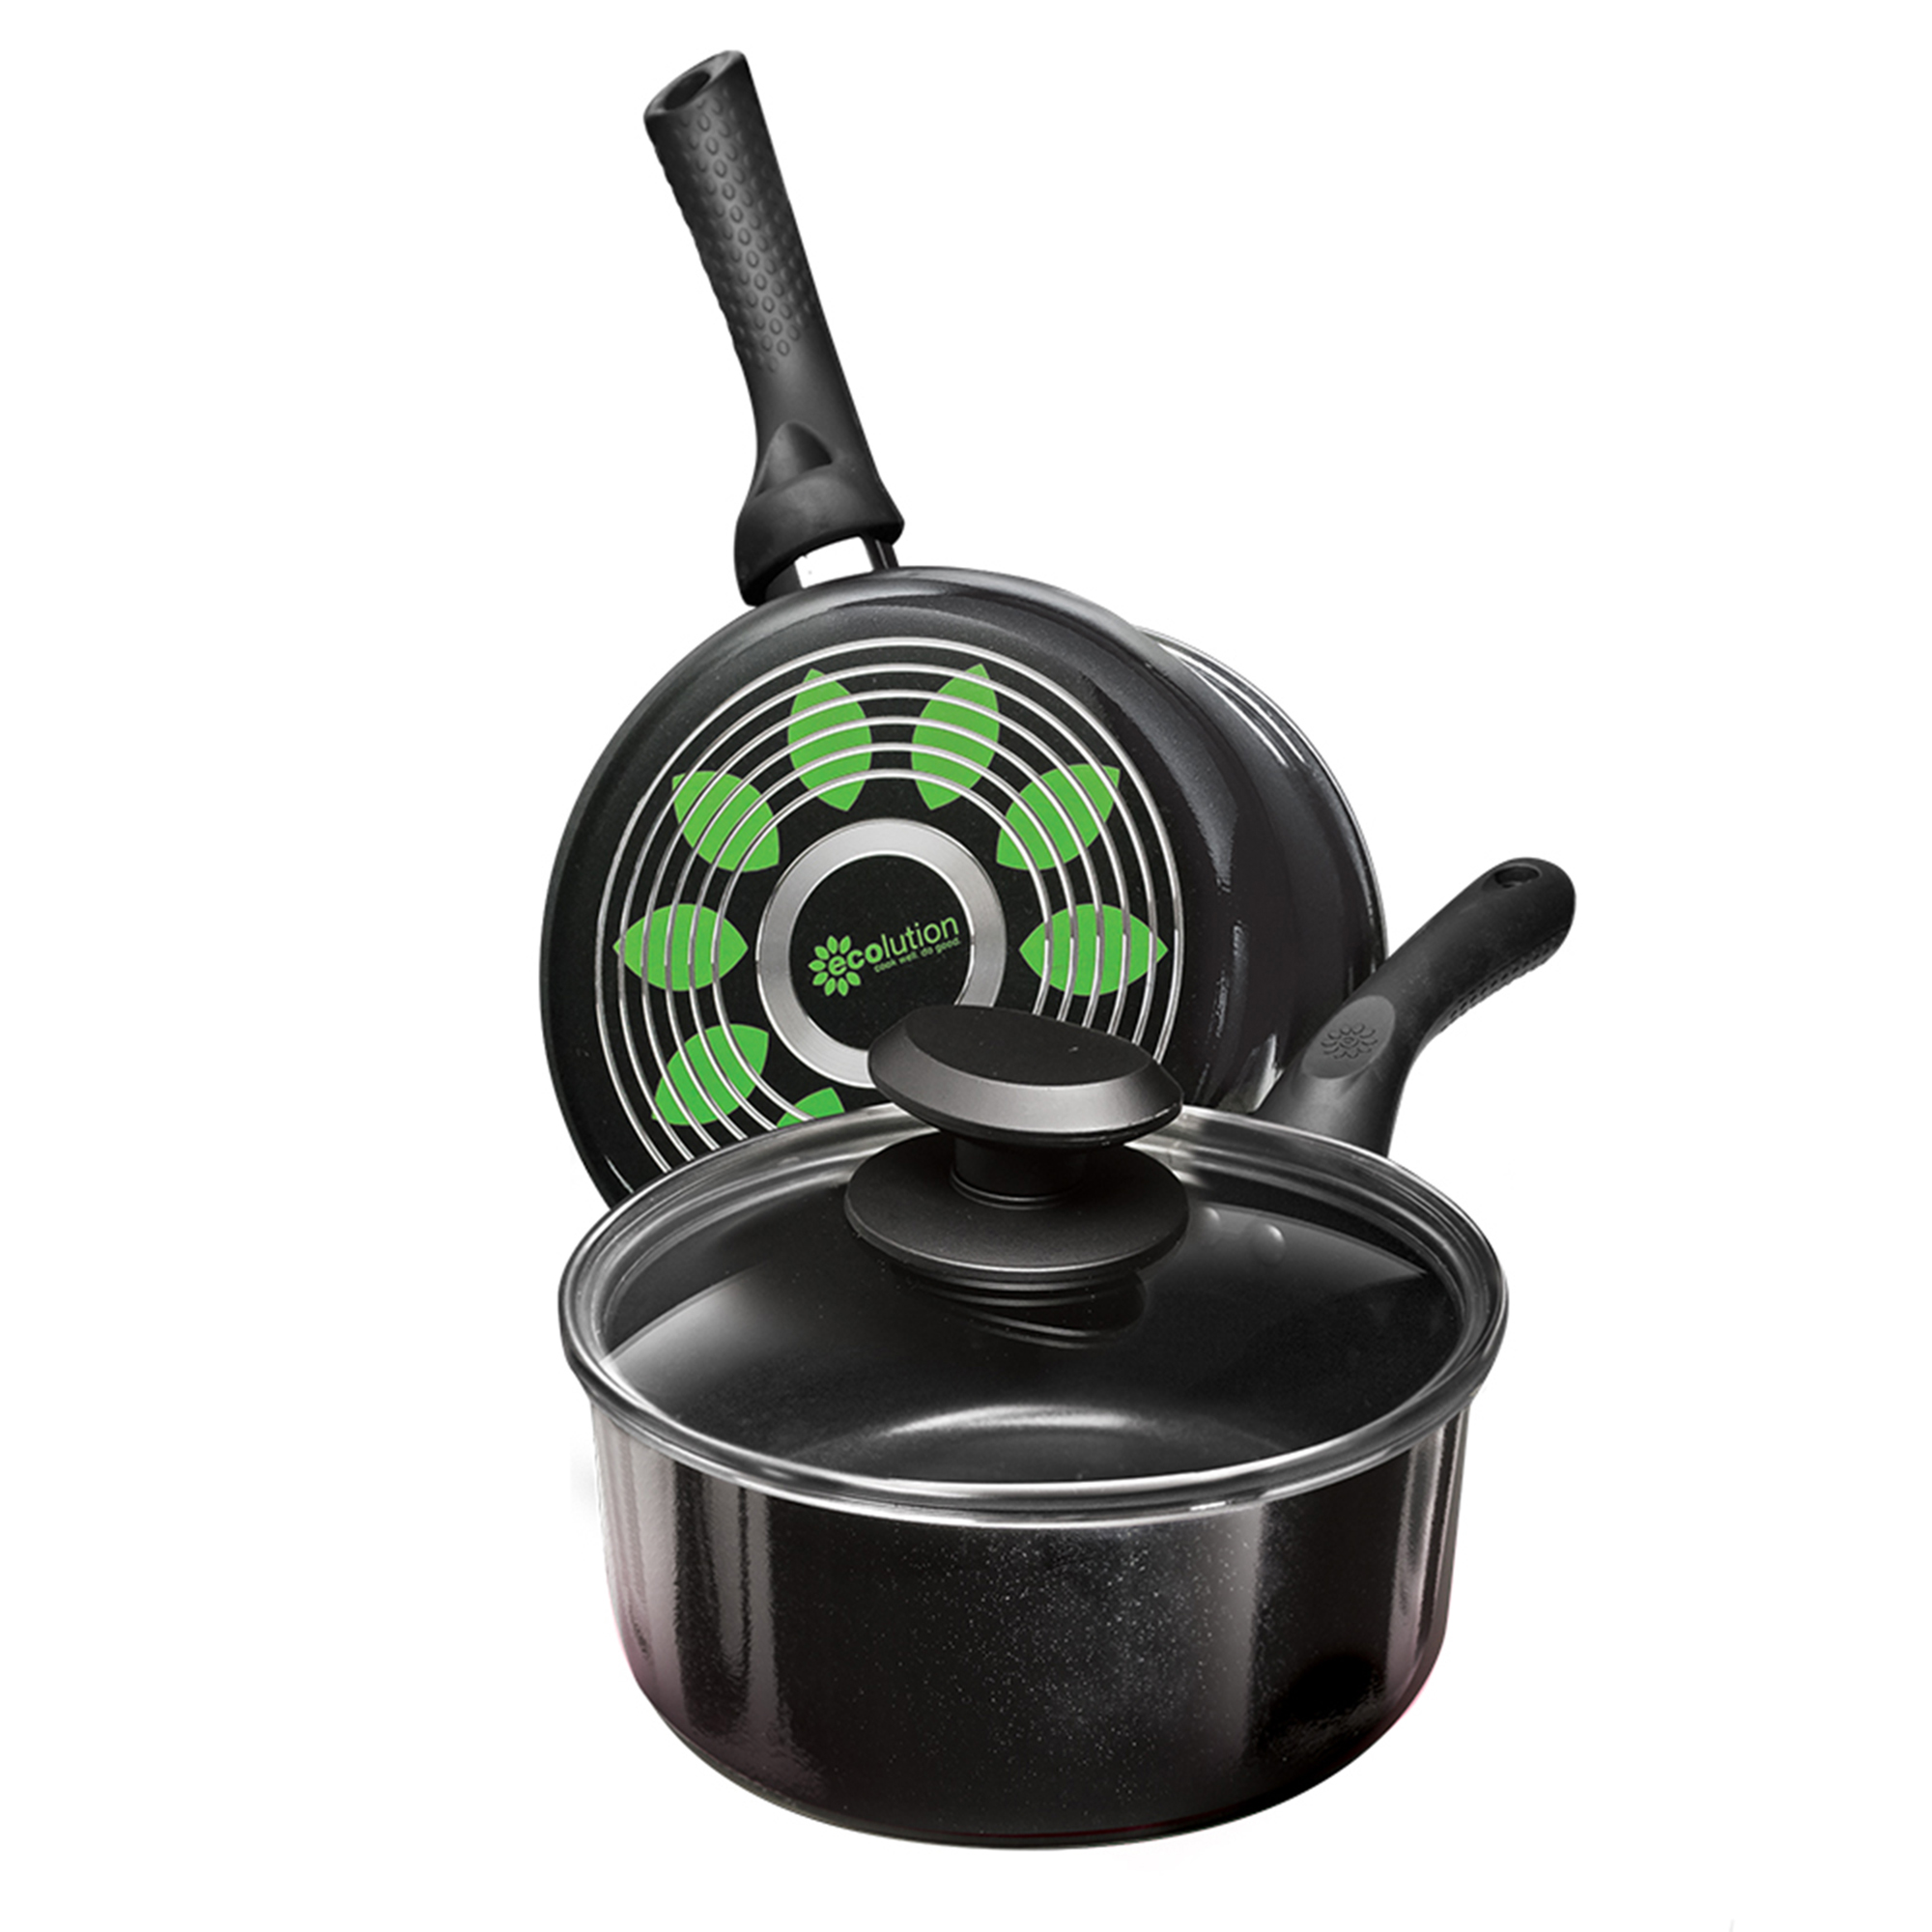 ECOLUTION EABK2818 BLACK ARTISTRY SAUCEPAN 2 QT WITH LID